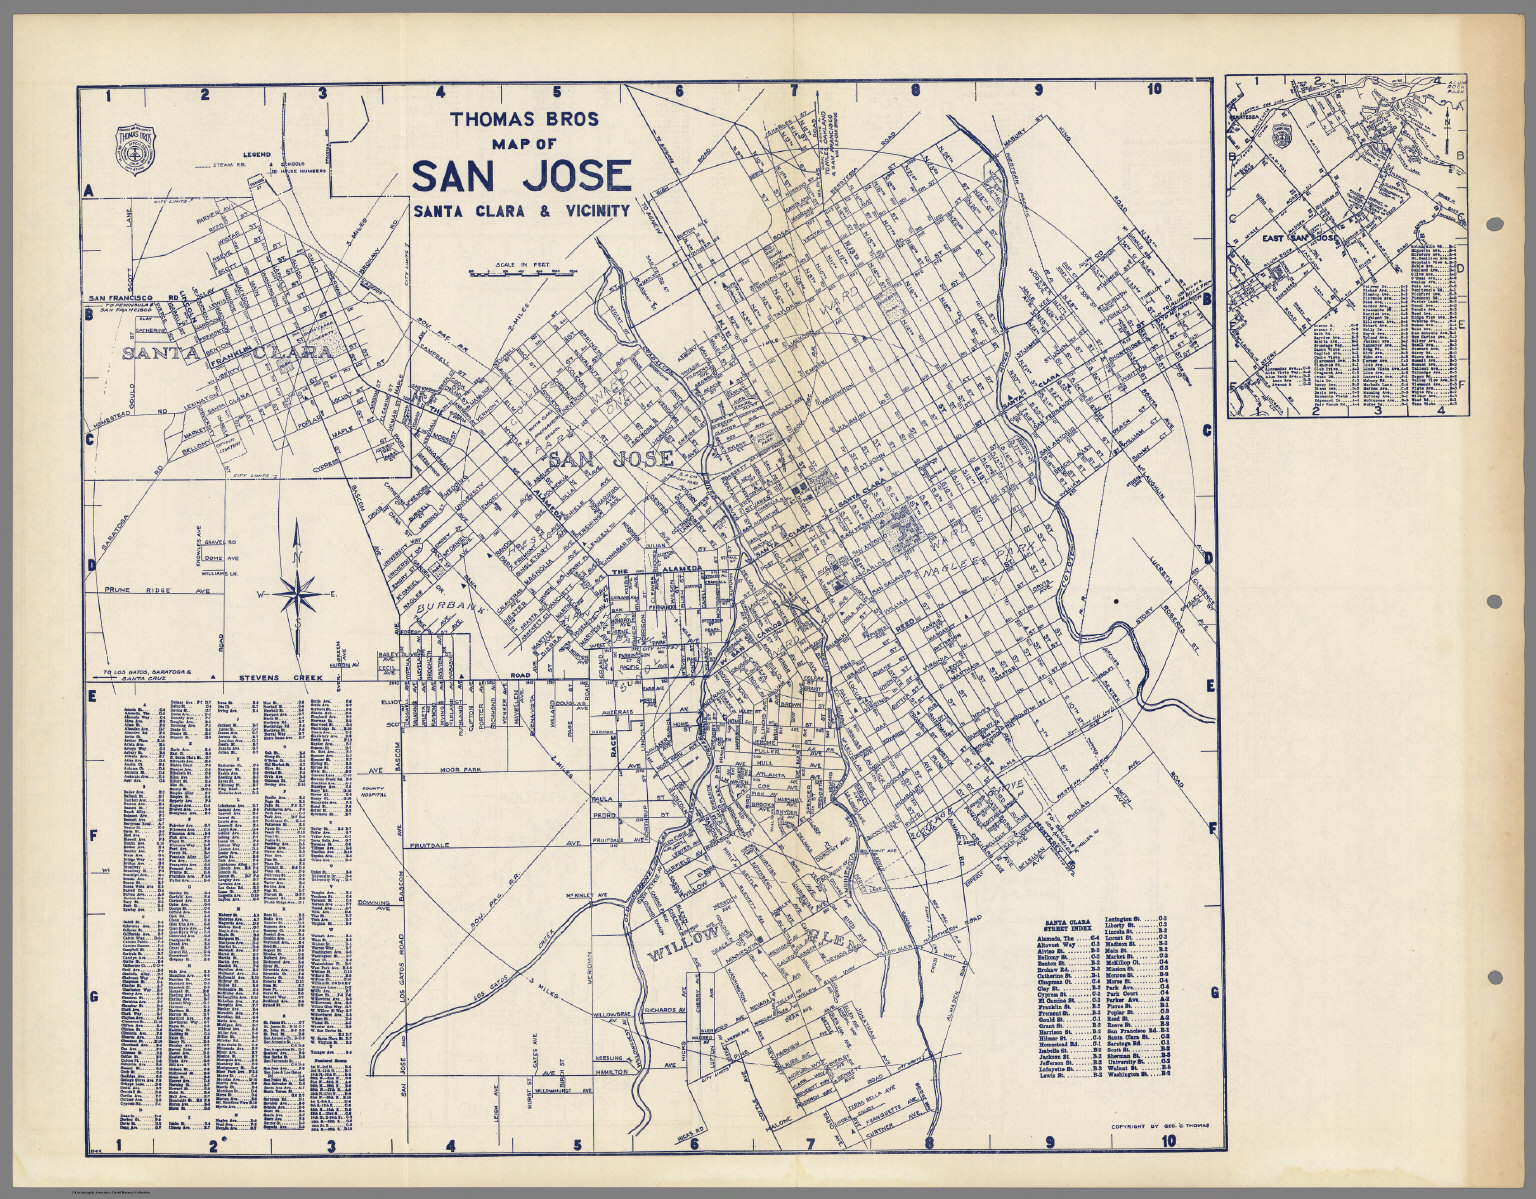 Thomas Bros Map Of San Jose, Santa Clara & Vicinity, California - Thomas Bros Maps California